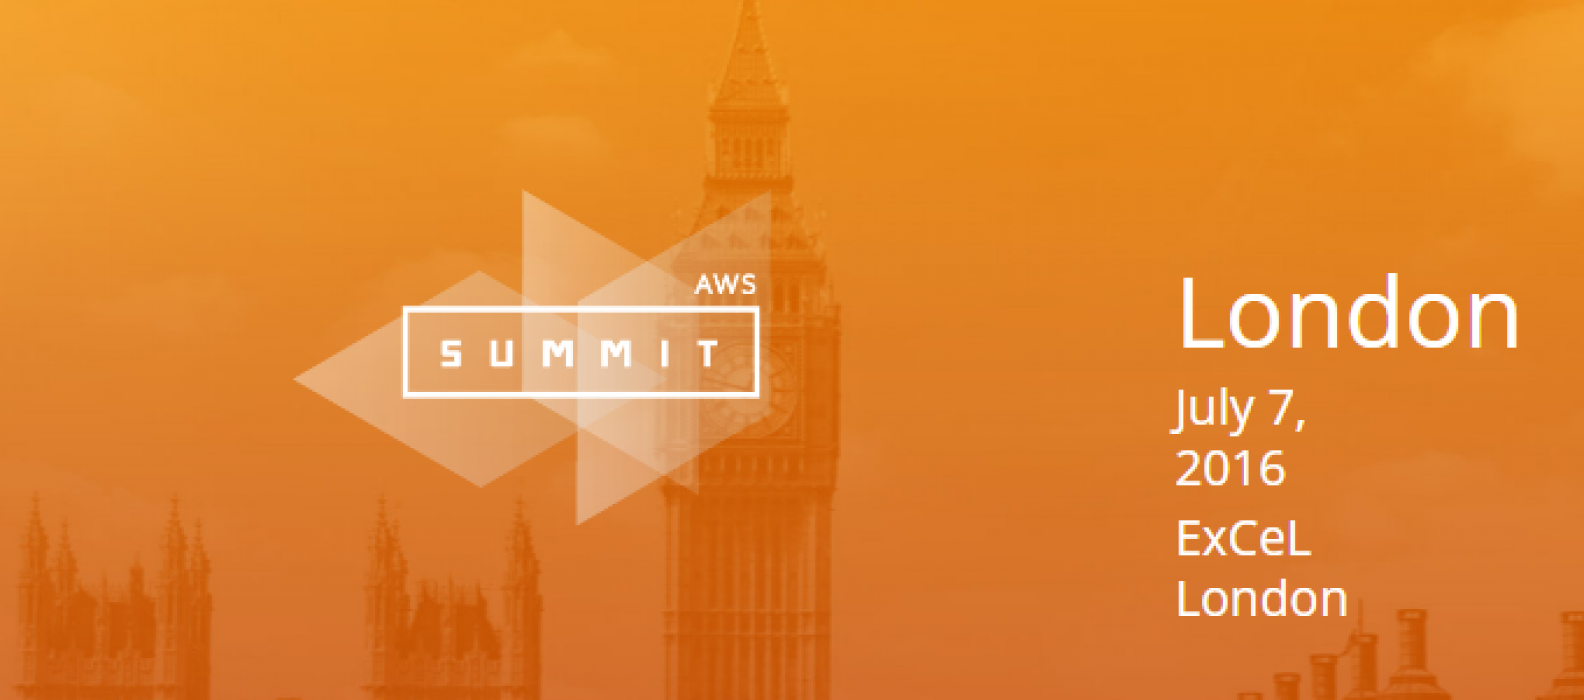 5000 Heads in the cloud, the AWS London Summit 2016